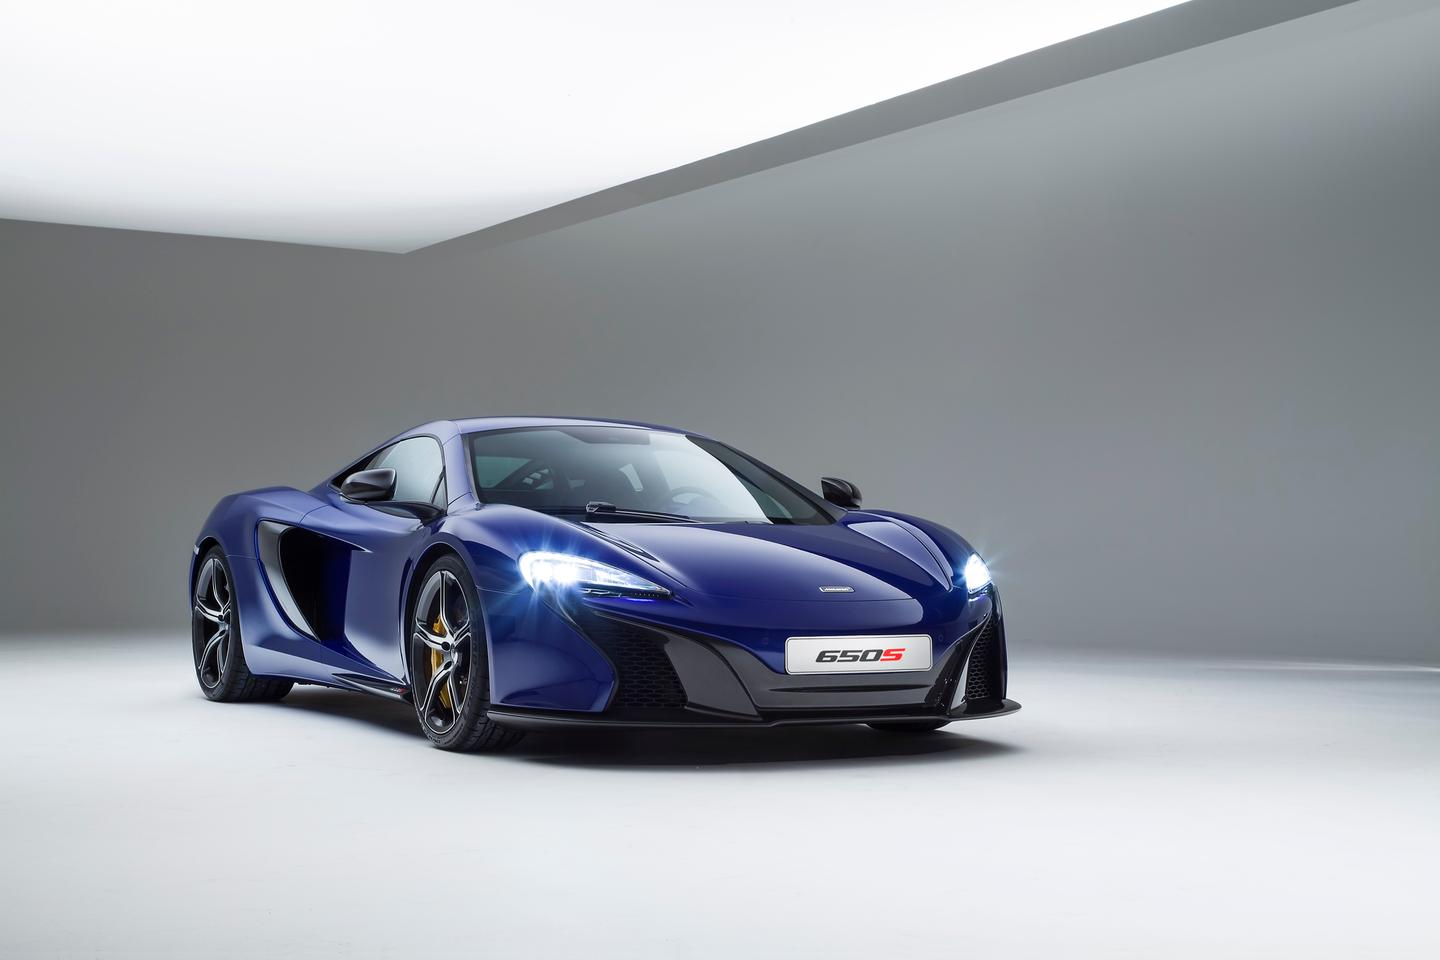 The 650S' roofline, cabin treatment, dihedral doors and engine intakes are straight from the 12C, while the nose treatment and headlights are definitely P1 inspired